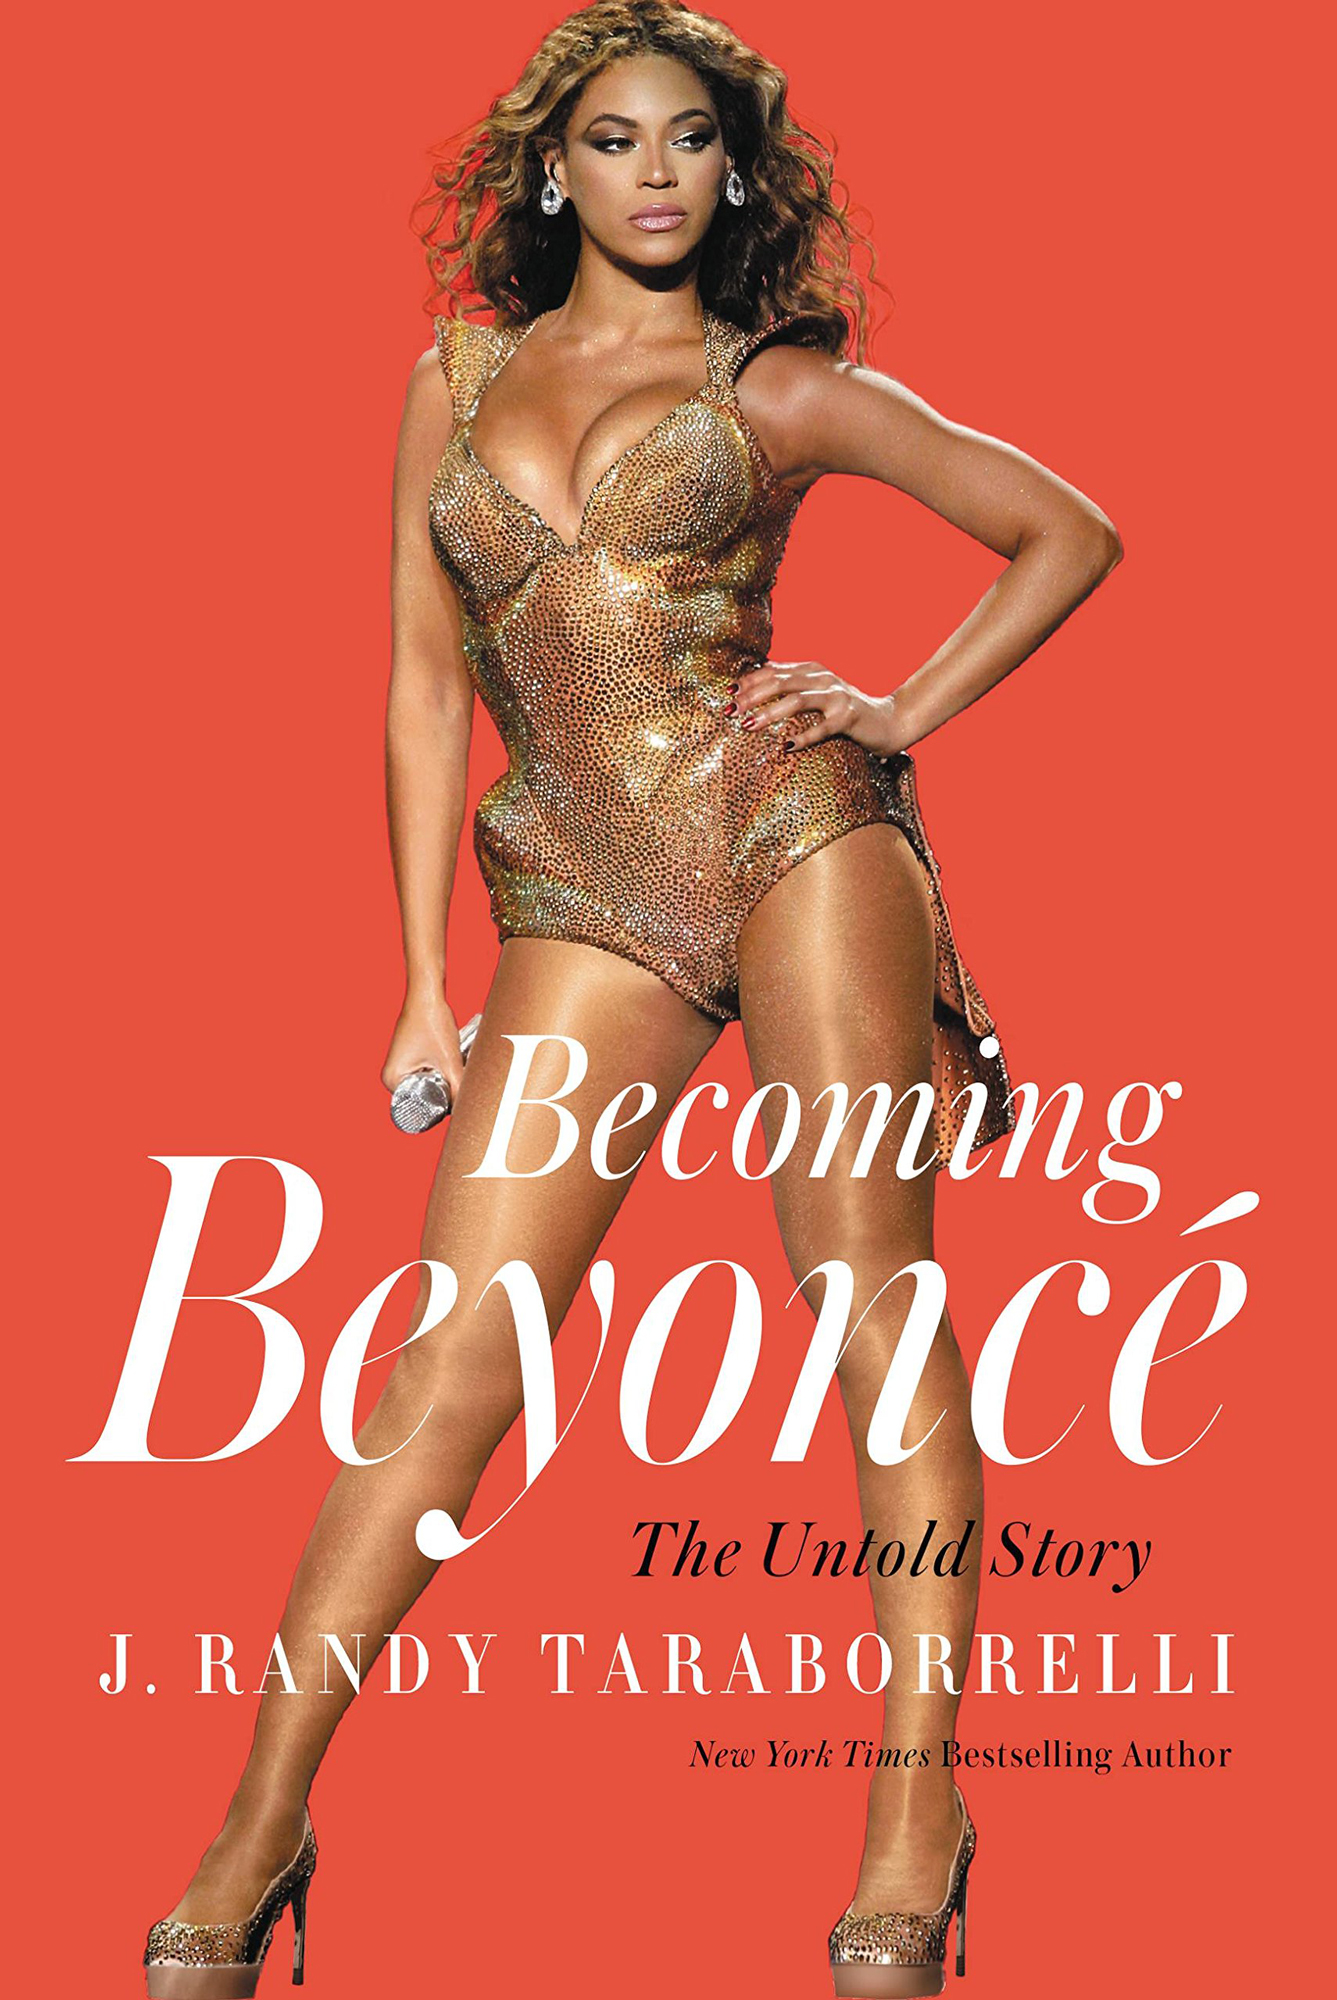 On Becoming Interesting On Apollo And The Sun: Becoming Beyoncé Review And Highlights